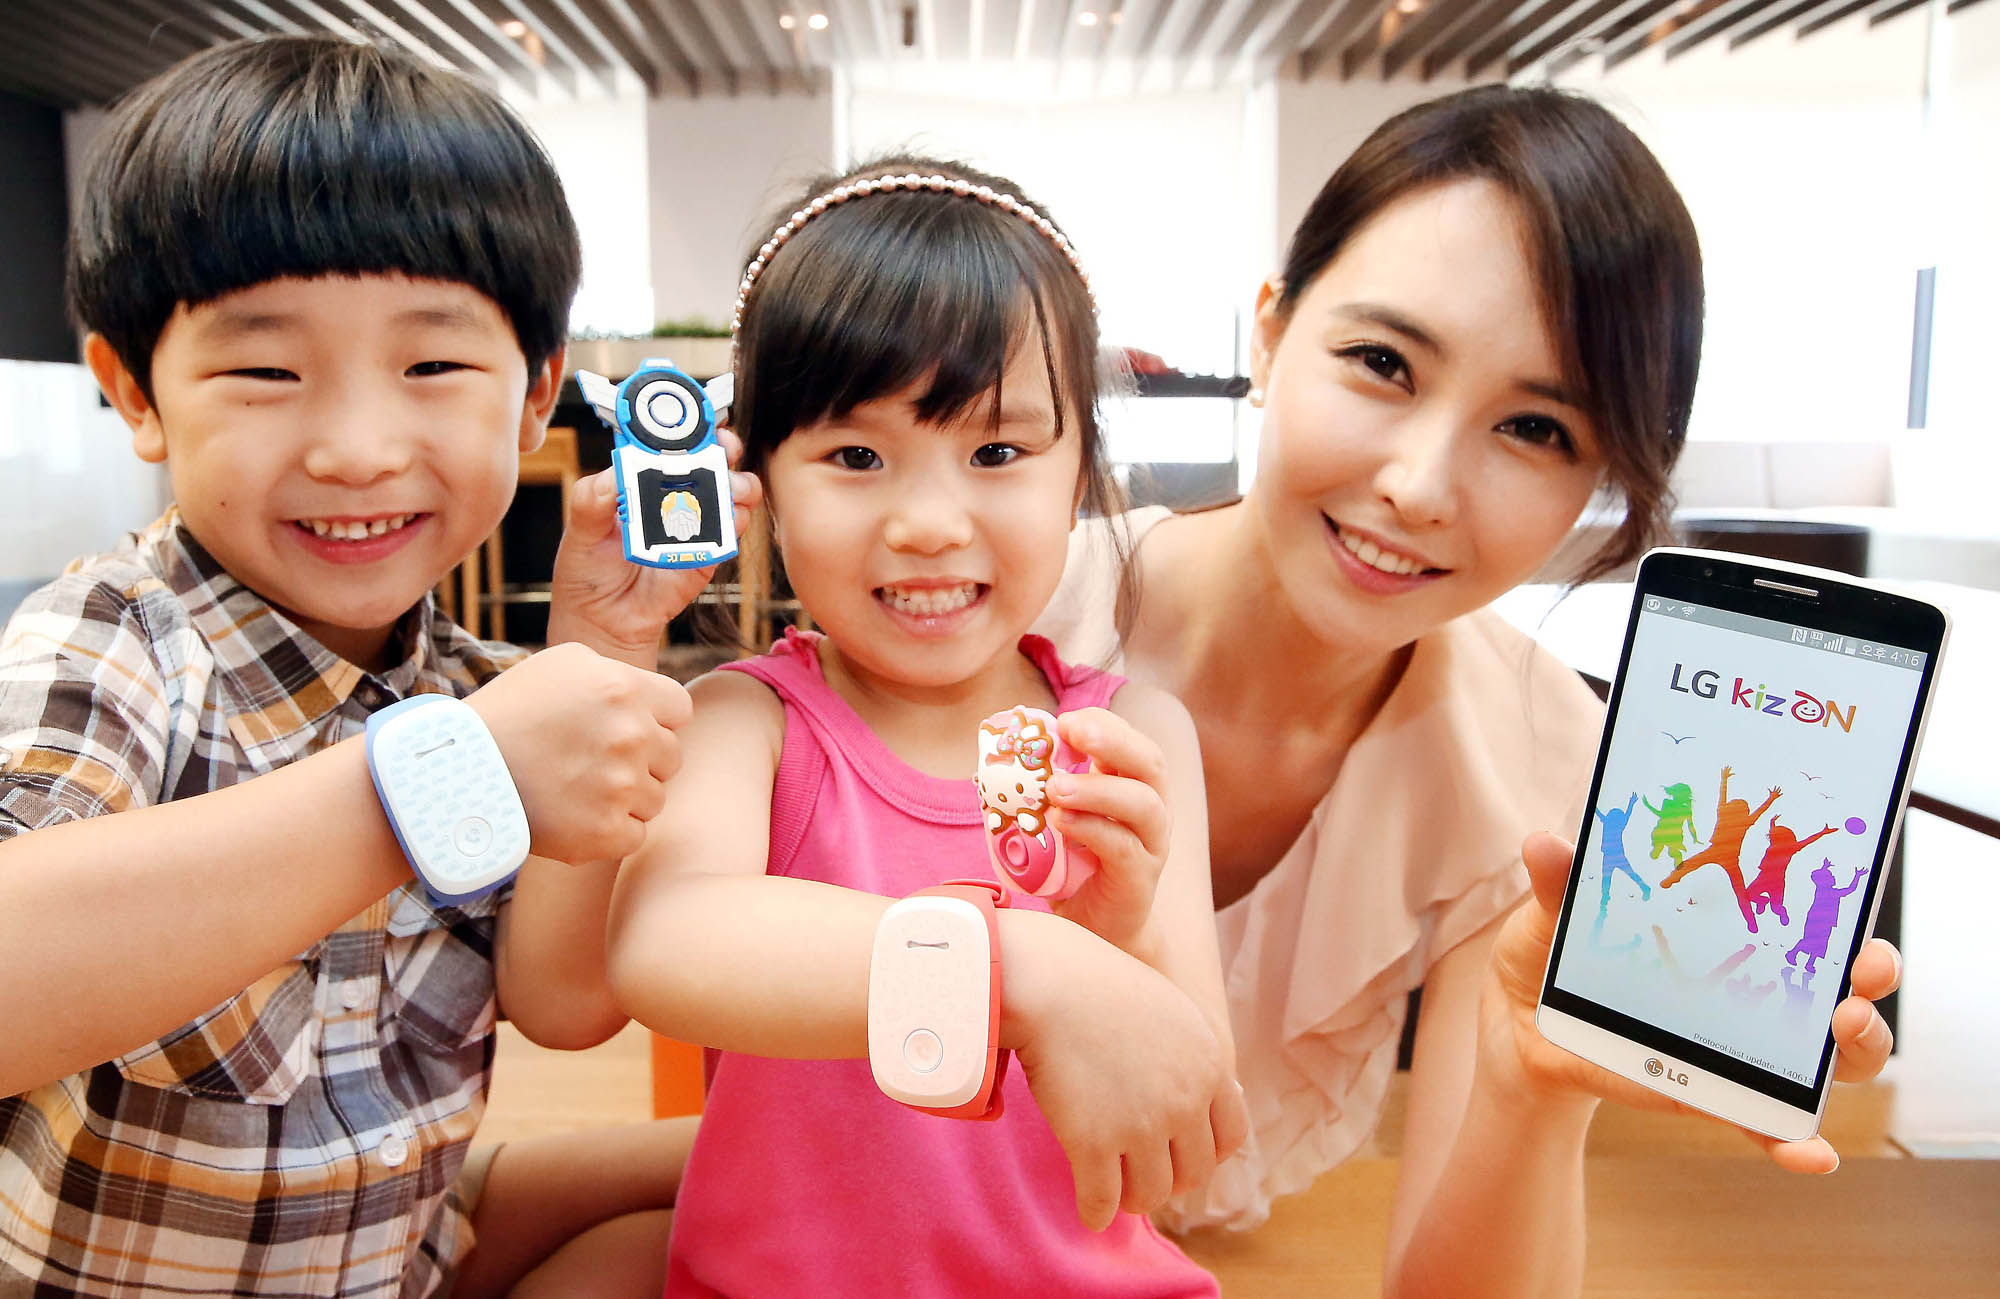 LG Electronics (LG) will extend the wearable experience to parents with children with its new KizON wristband. (image credit: LG Electronics)